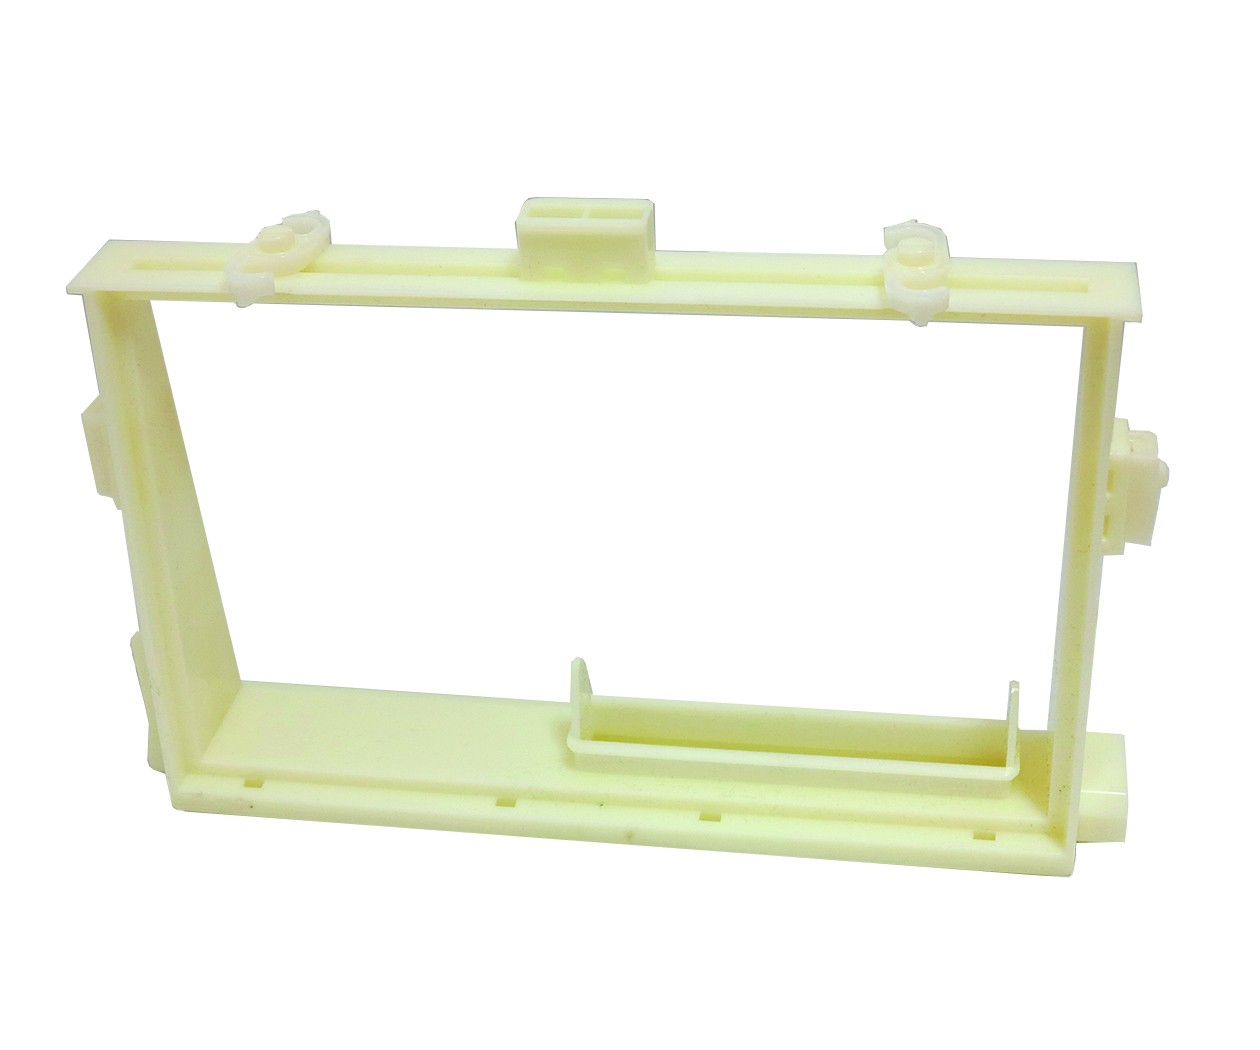 Dolphin Filter Cartridge Holder Replacement for Oasis Z5 and Triton Plus 9980733